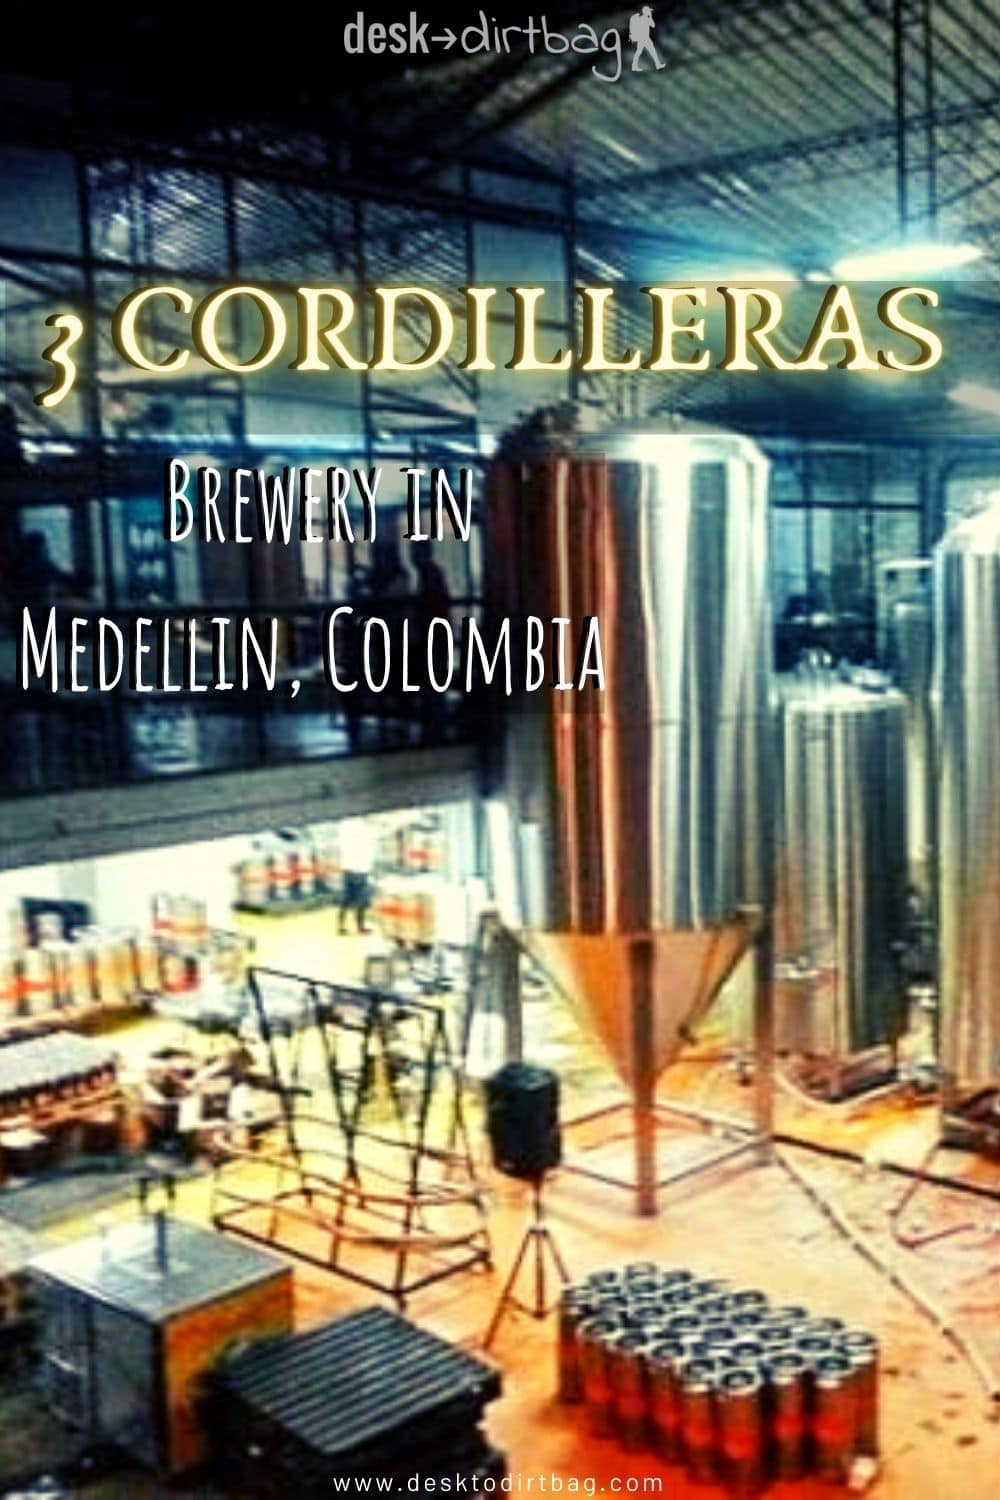 3 Cordilleras Brewery in Medellin, Colombia travel, south-america, medellin, colombia